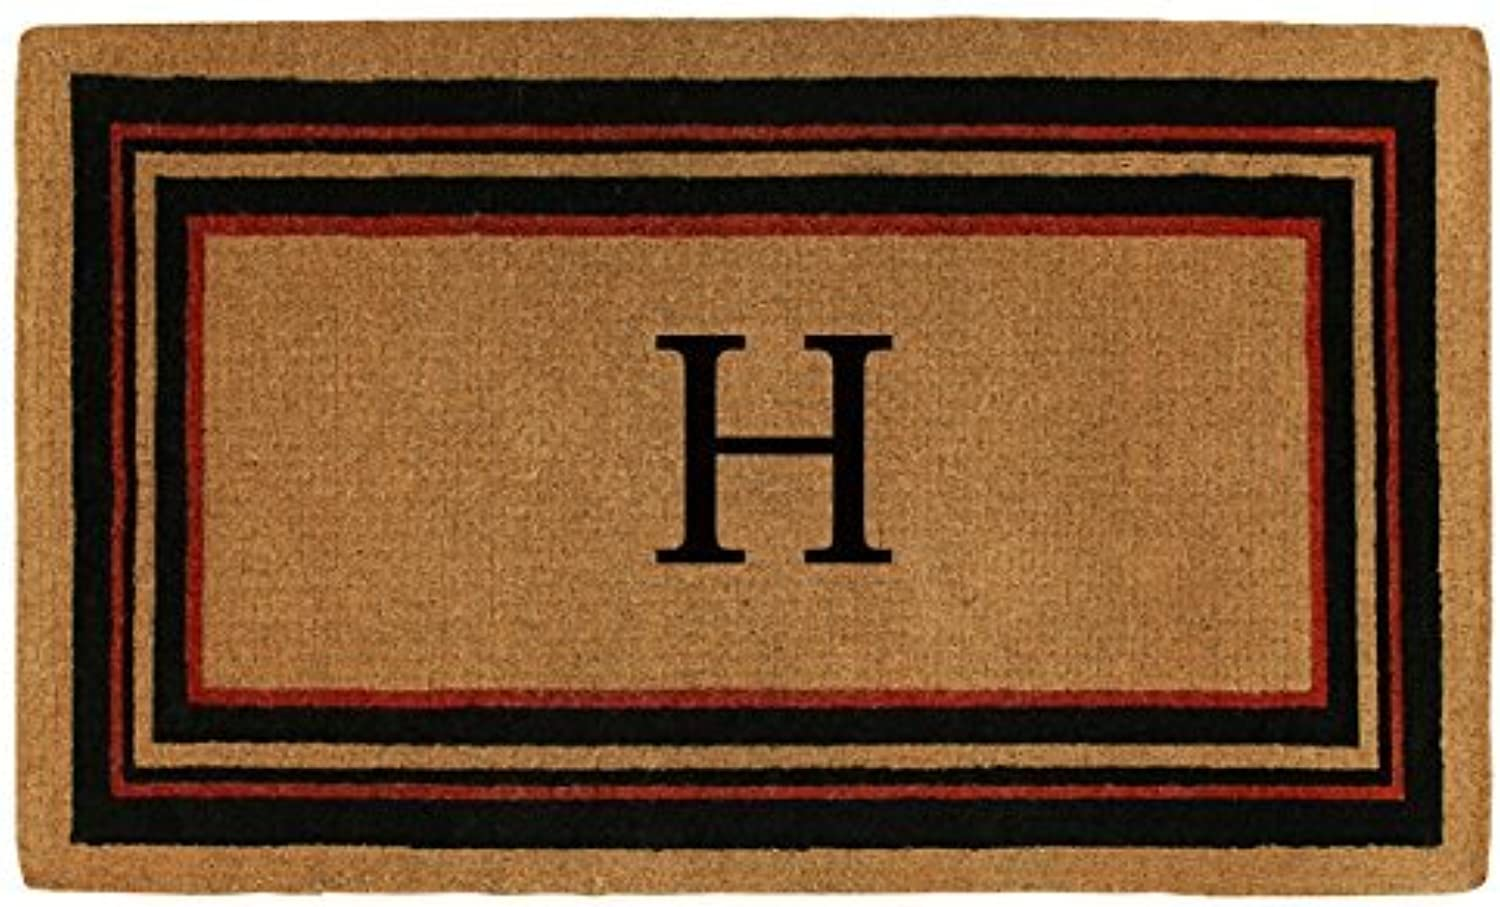 Home & More 180062436H Esquire Extra-thick Doormat, 24  x 36  x 1.50 , Monogrammed Letter H, Natural Black Red